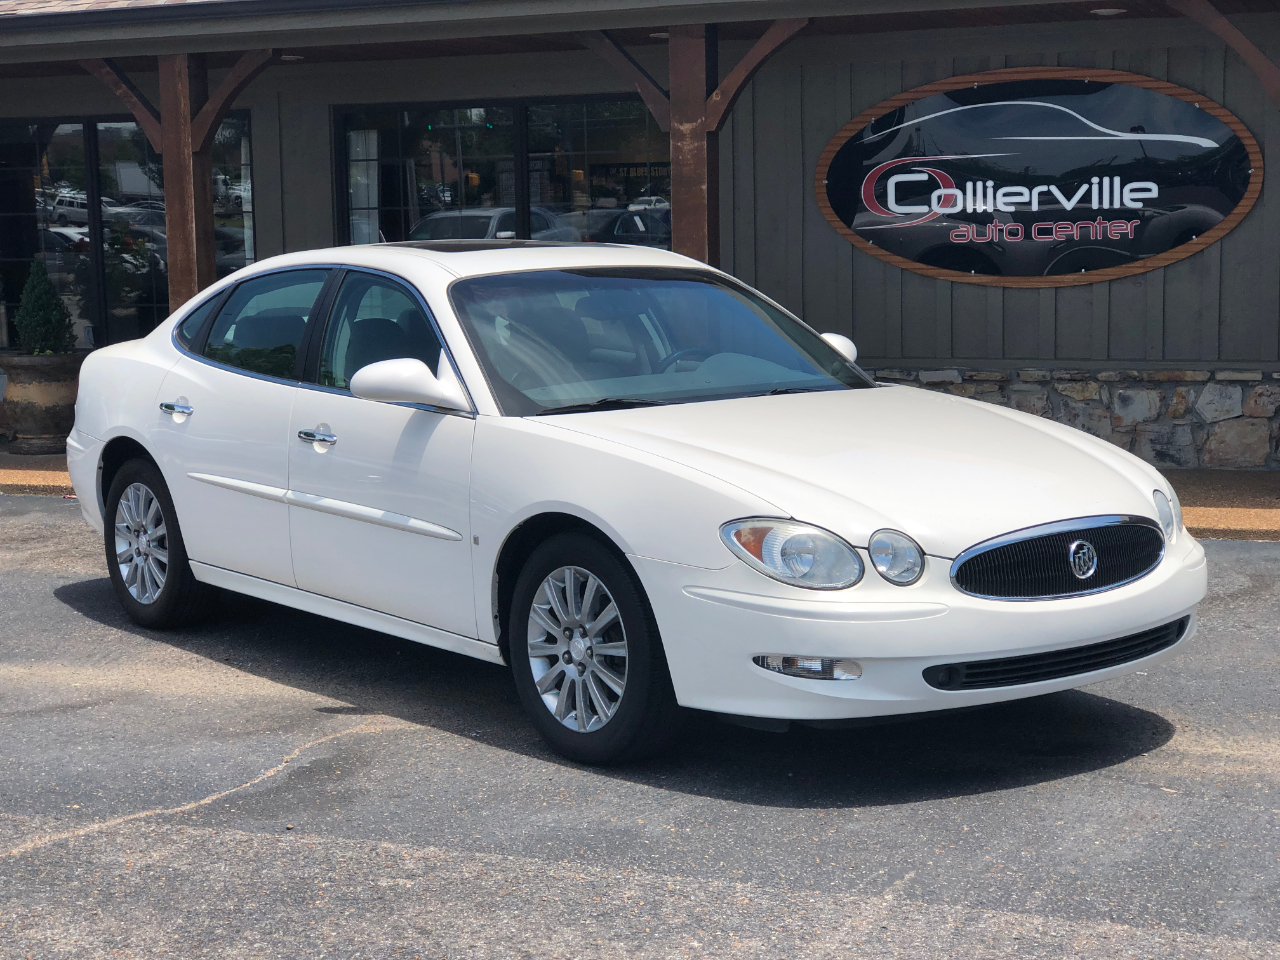 2007 Buick LaCrosse 4dr Sdn CXS